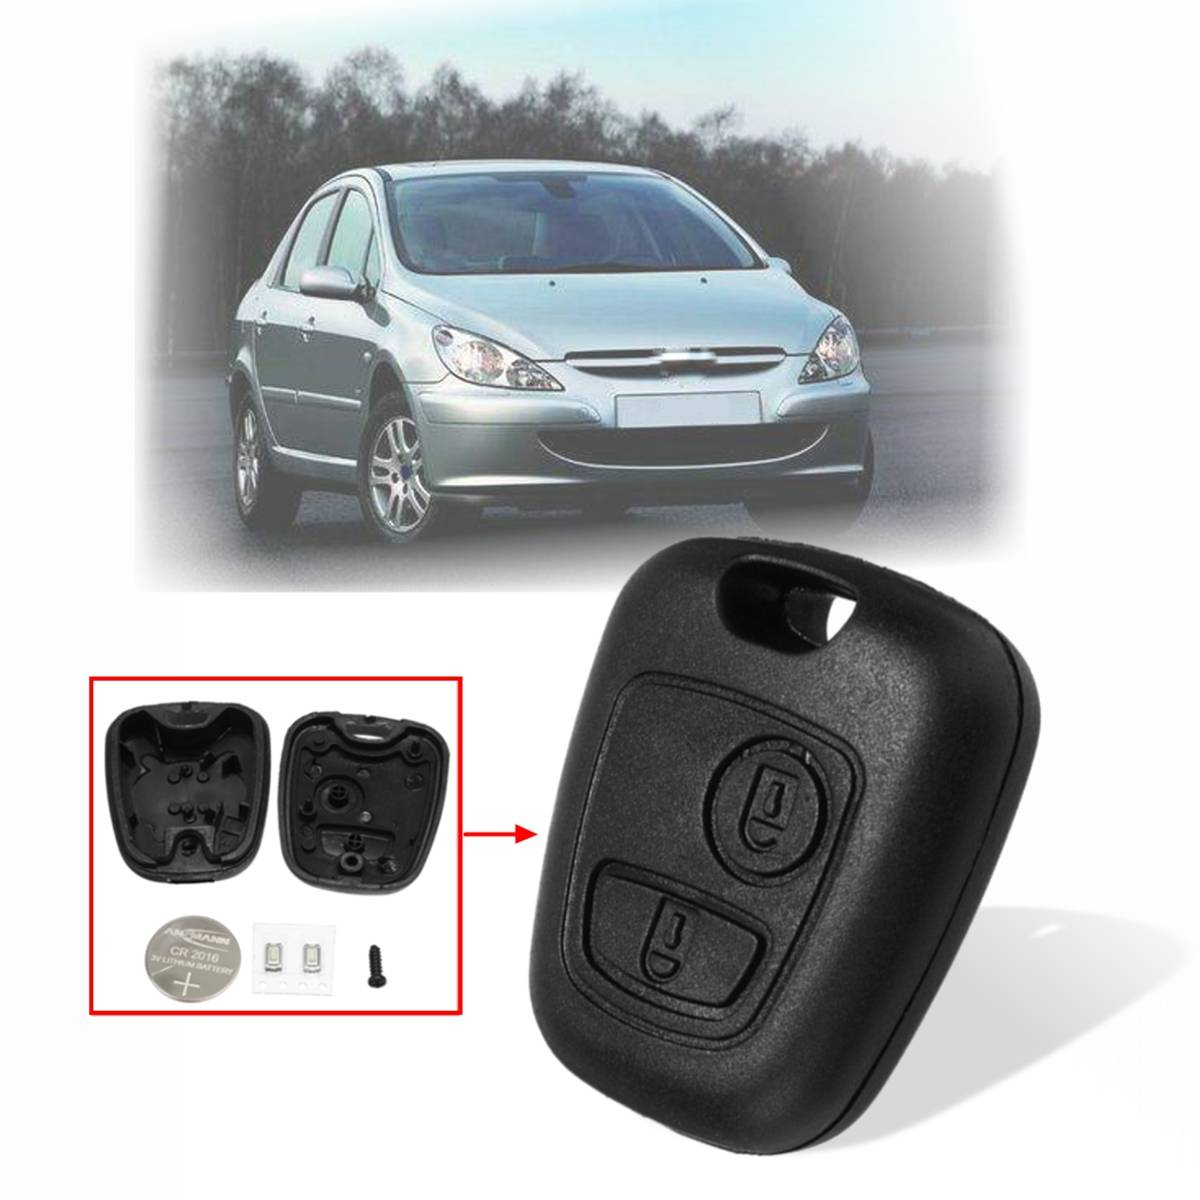 2 Buttons Car <font><b>Remote</b></font> <font><b>Key</b></font> Fob Case For <font><b>Peugeot</b></font> 106 107 206 <font><b>207</b></font> 306 307 405 406 407 Shell with <font><b>Battery</b></font> Replacement Kit image